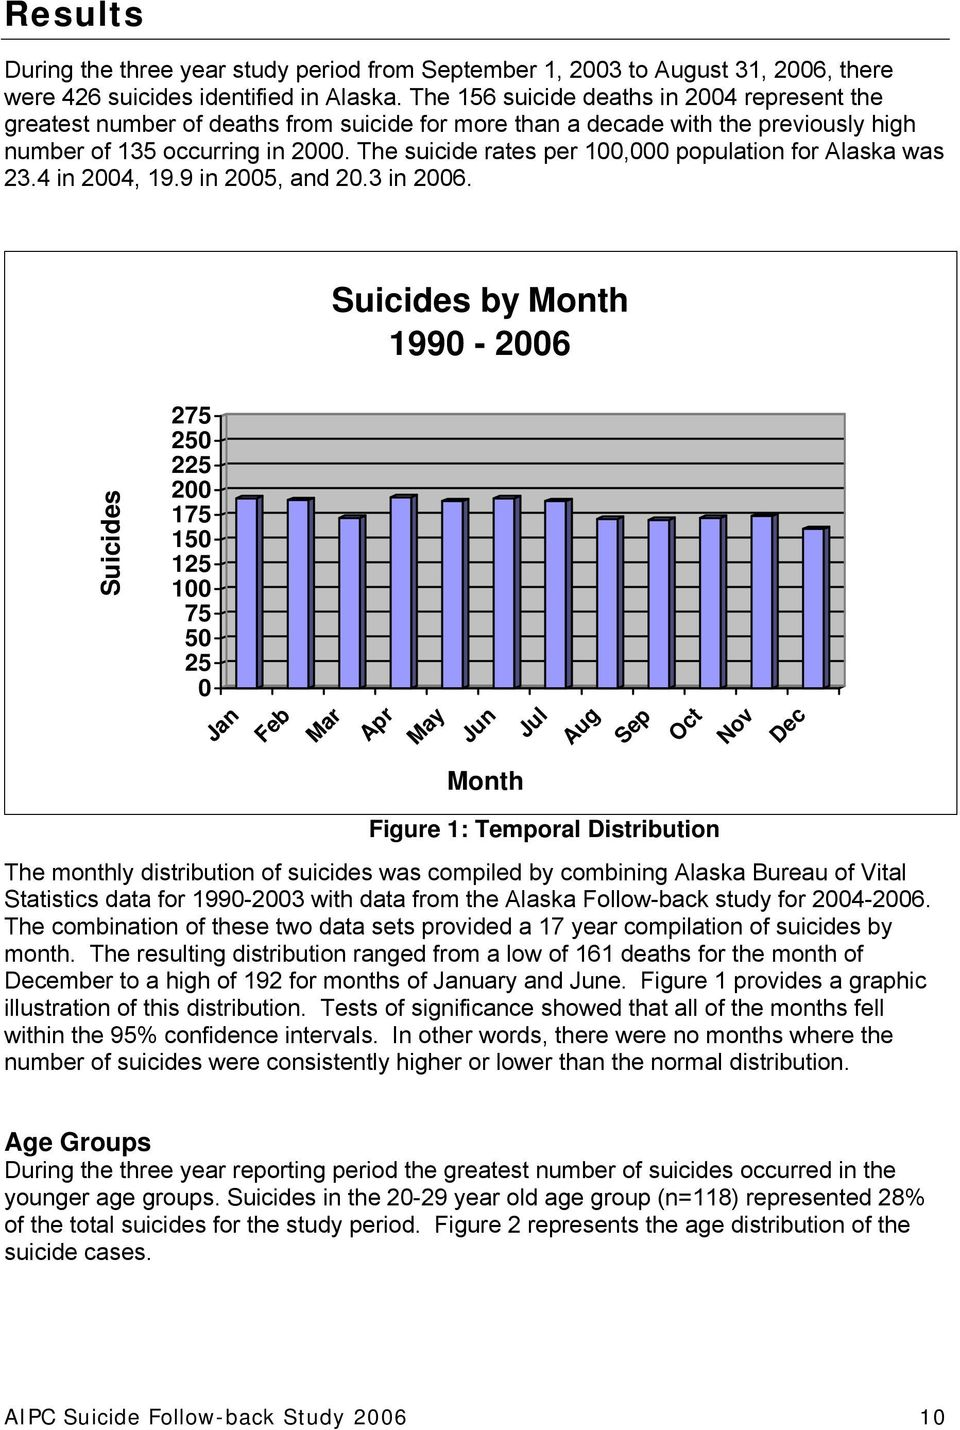 The suicide rates per 100,000 population for Alaska was 23.4 in 2004, 19.9 in 2005, and 20.3 in 2006.